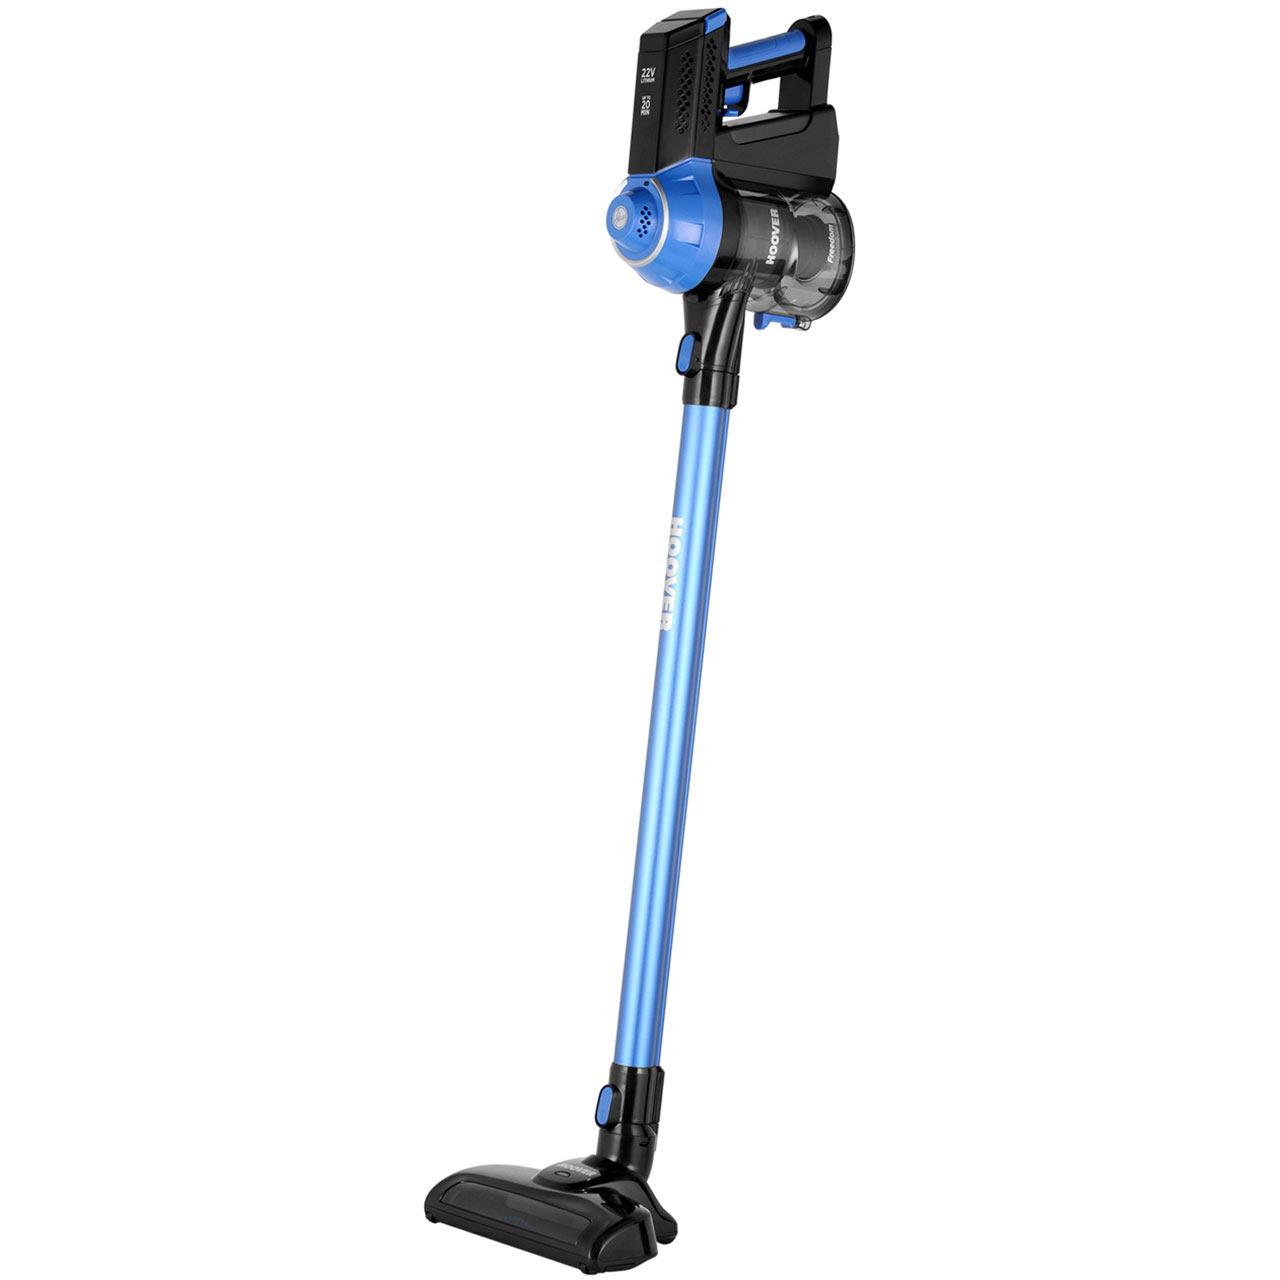 d009e5185c2 ... Hoover Freedom FD22L Cordless Vacuum Cleaner with up to 20 Minutes Run  Time - FD22L BL ...